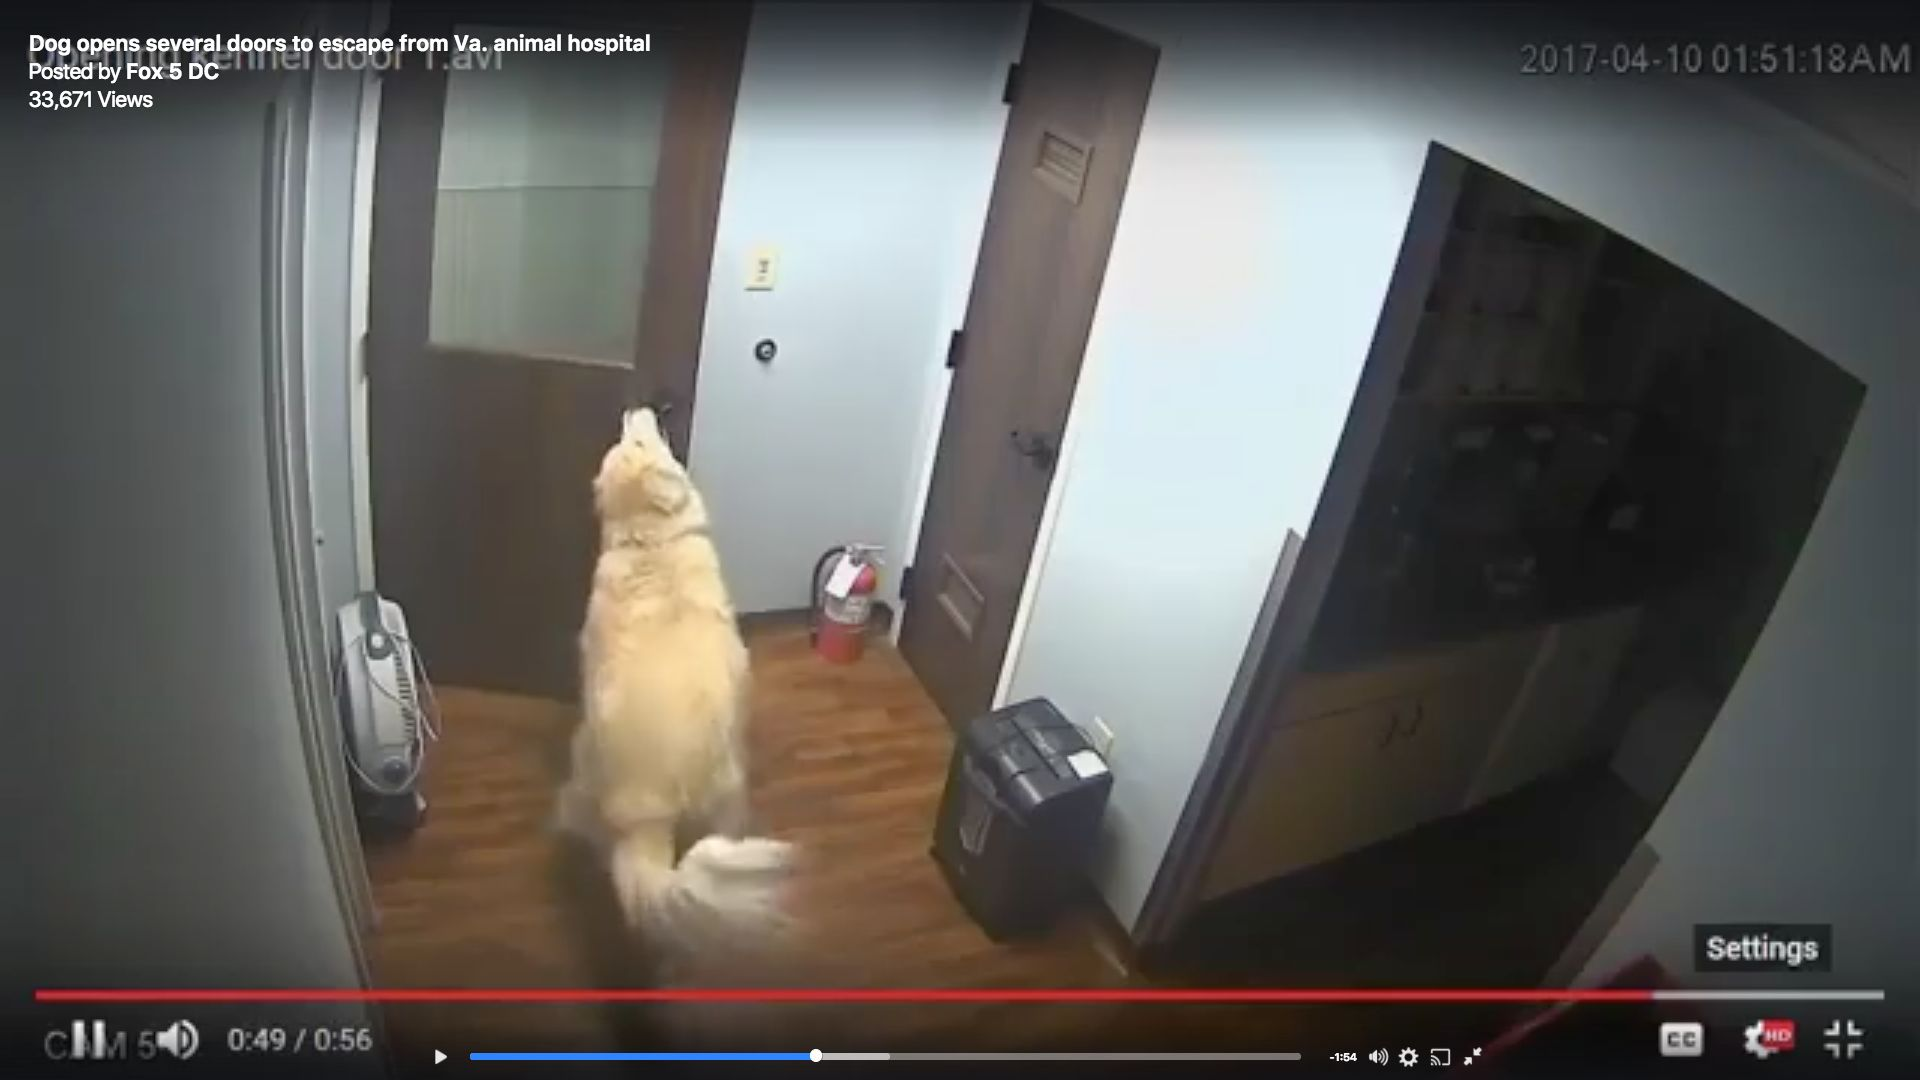 General the dog was filmed breaking out of the animal hospital with ease